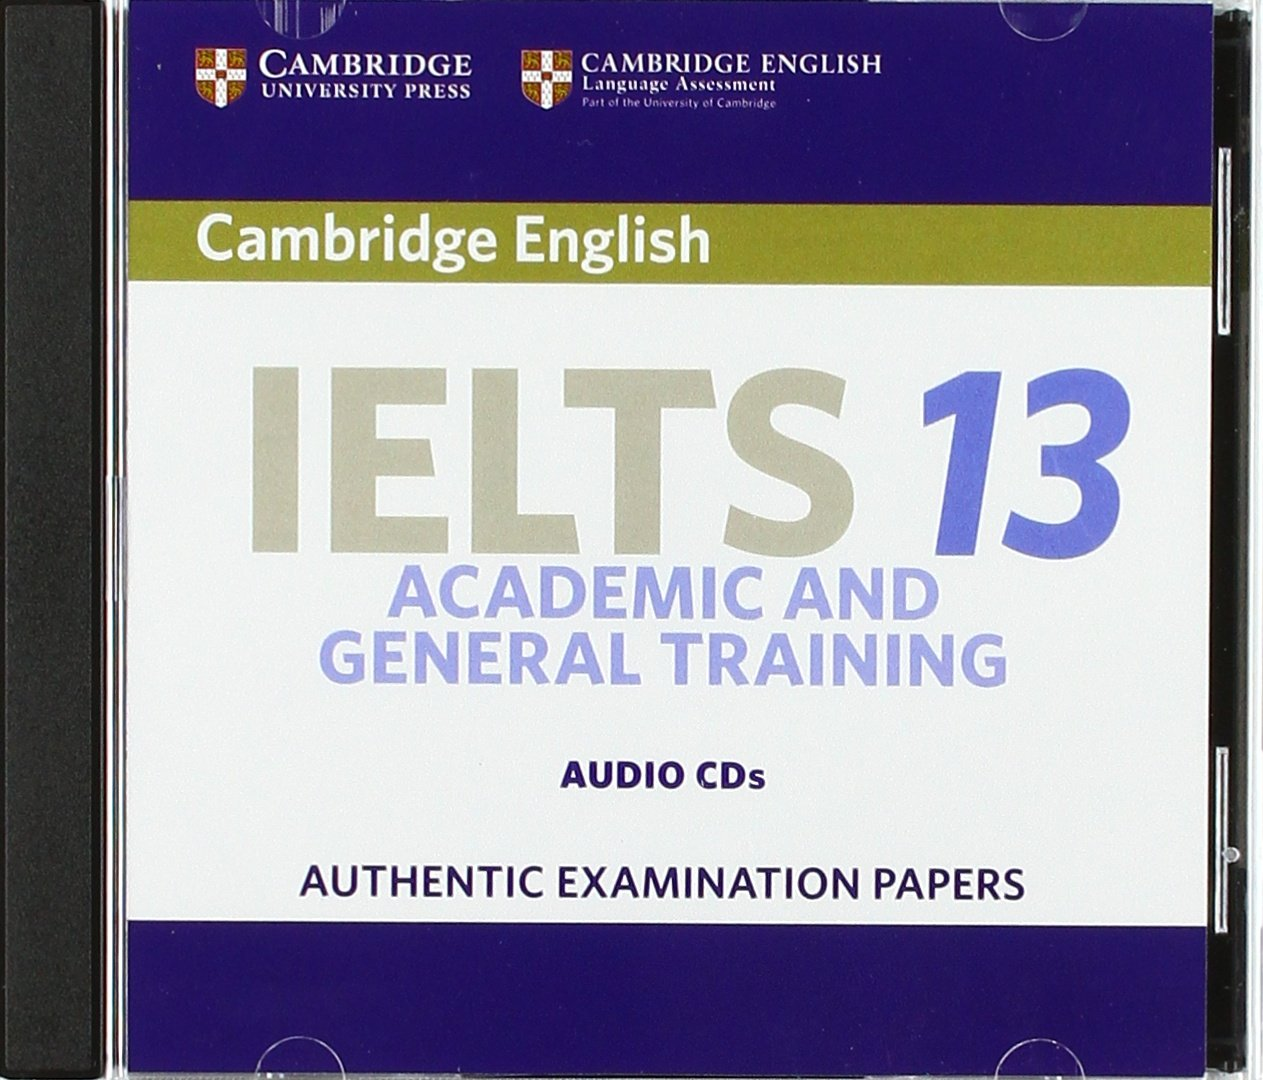 Cambridge IELTS 13 Audio CDs (2): Authentic Examination Papers (IELTS Practice Tests) ebook